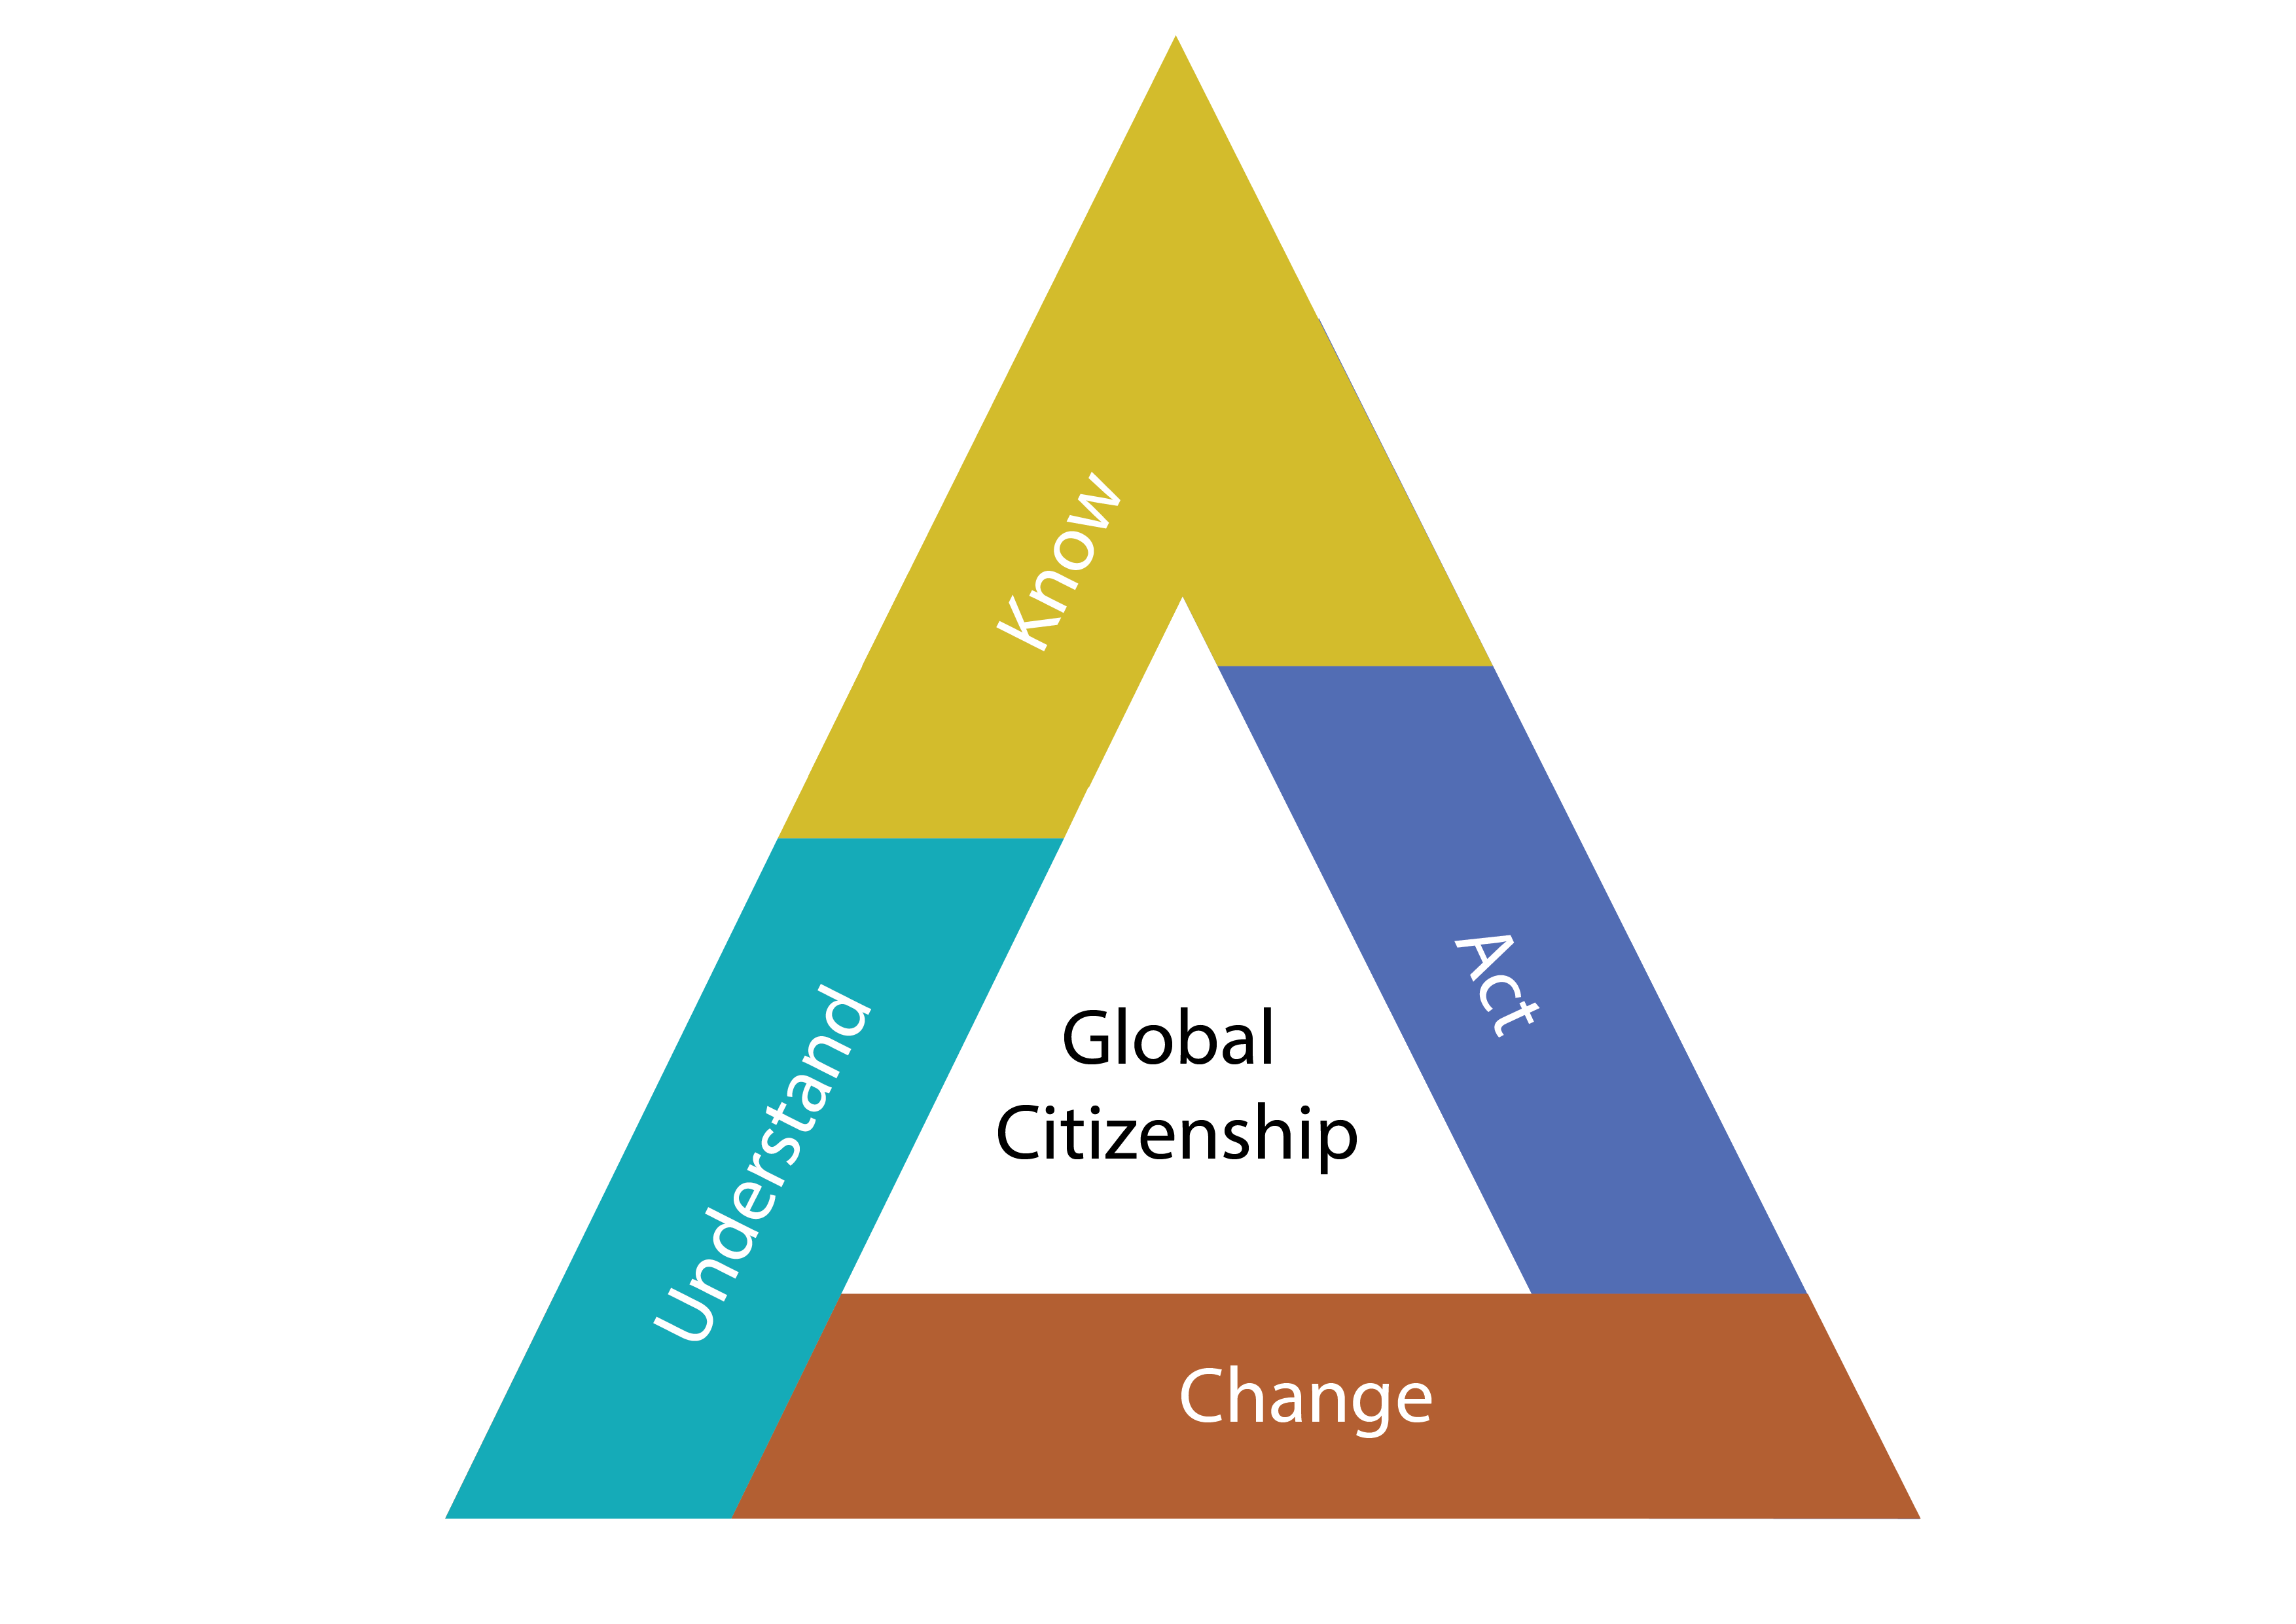 Triangle with 'global citizenship' written in the middle and the words Understand, Know, Act, and Change along the outside.